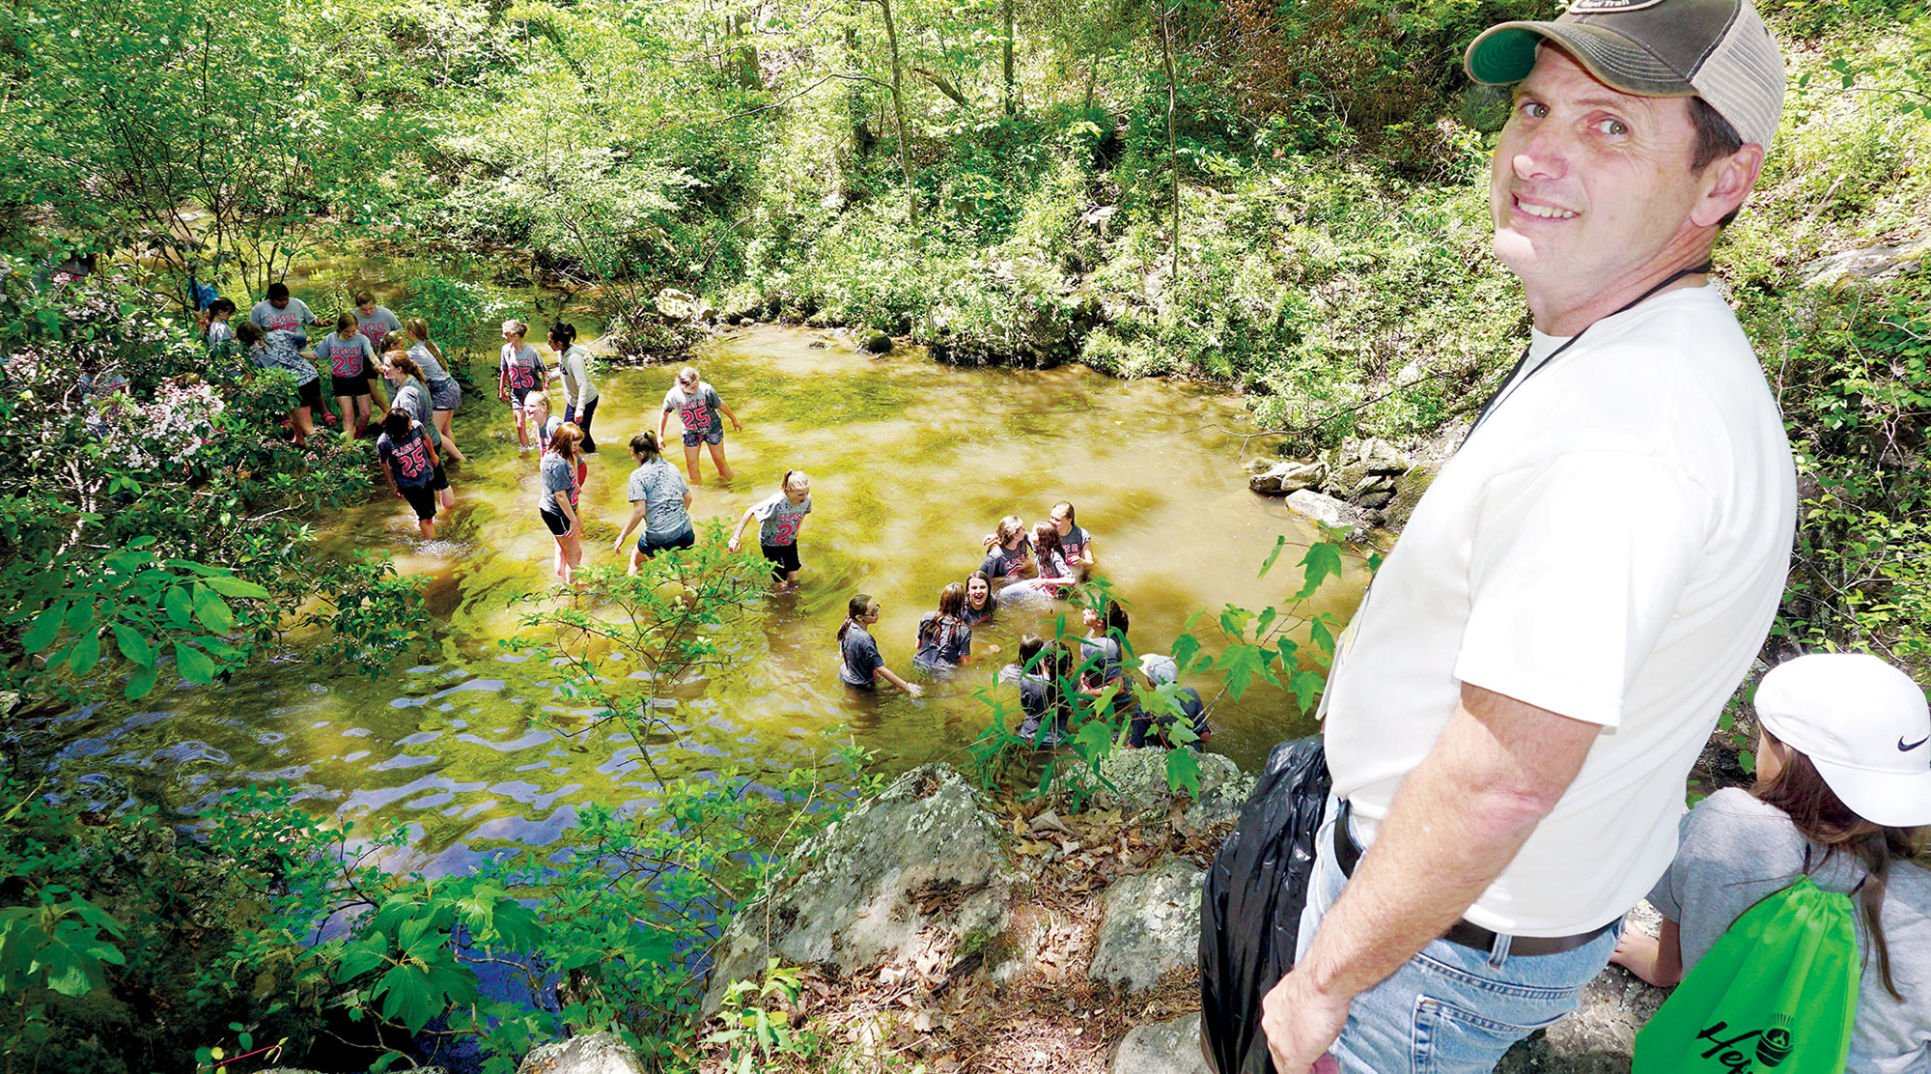 Cleburne 6th-graders help open Pinhoti's spur trail into Heflin